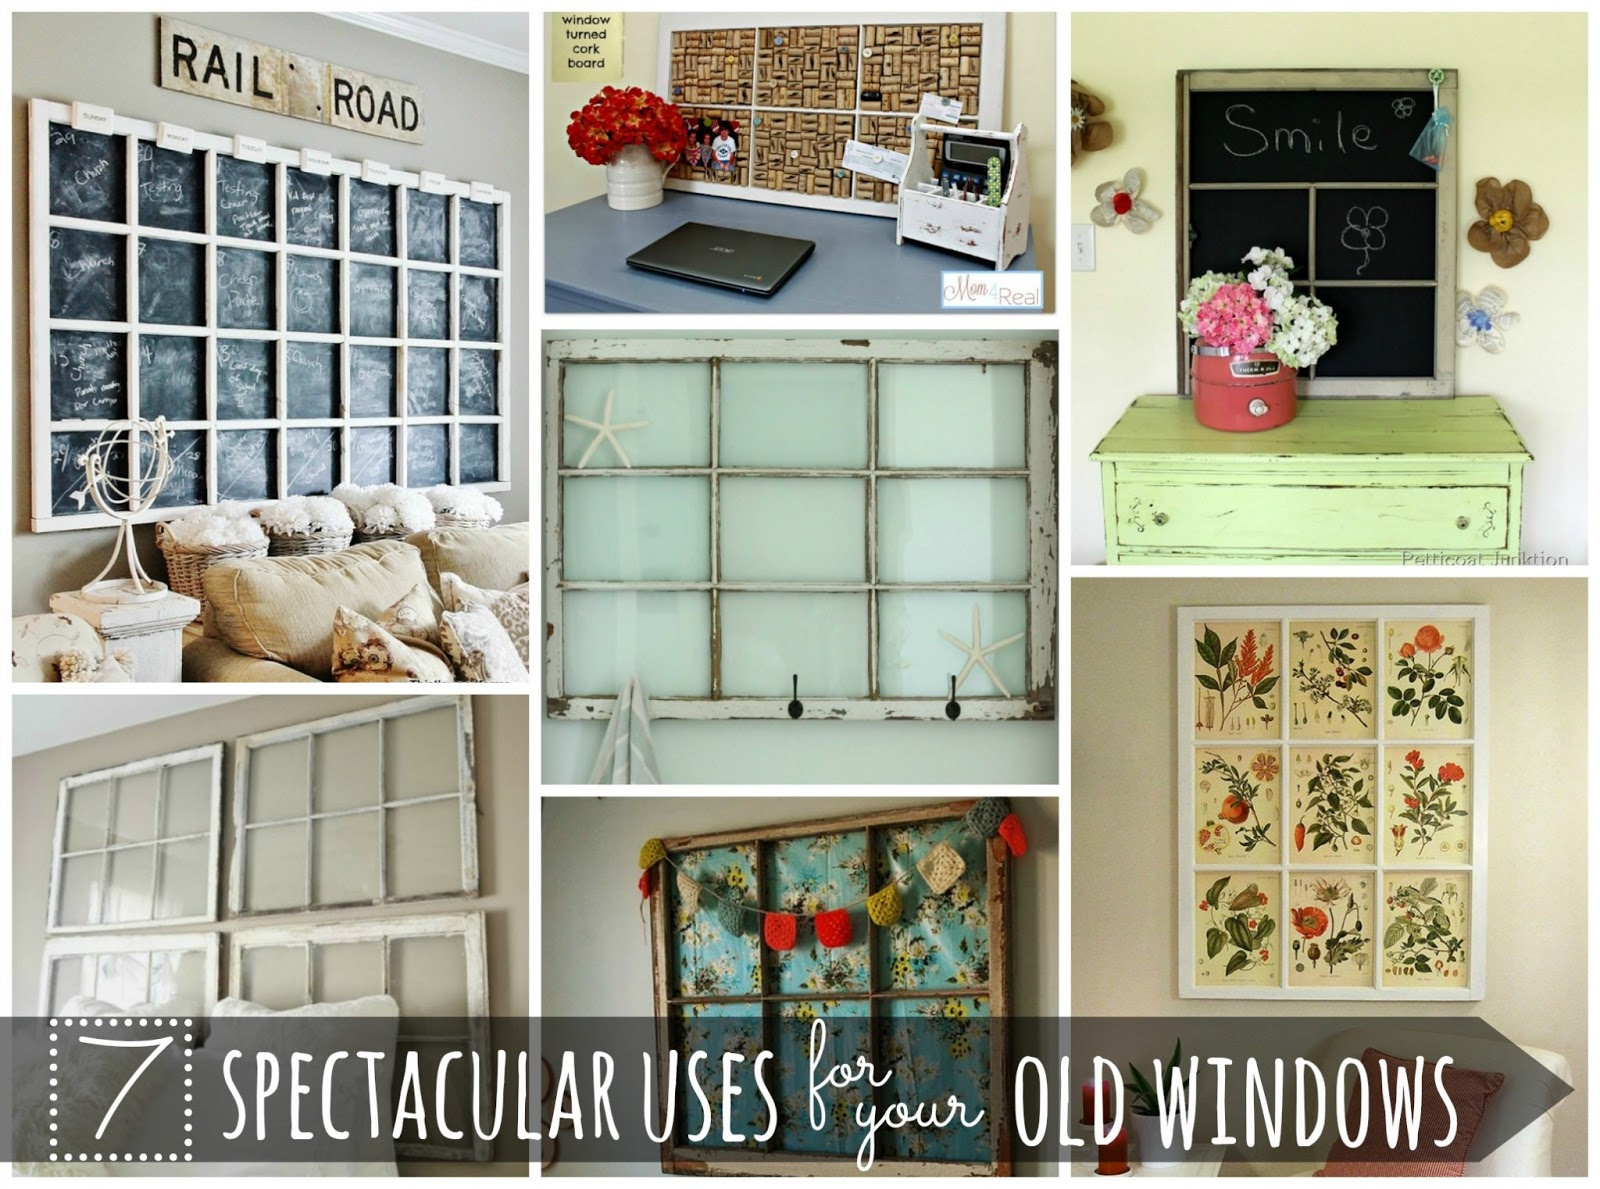 & 7 Spectacular Uses For Old Windows